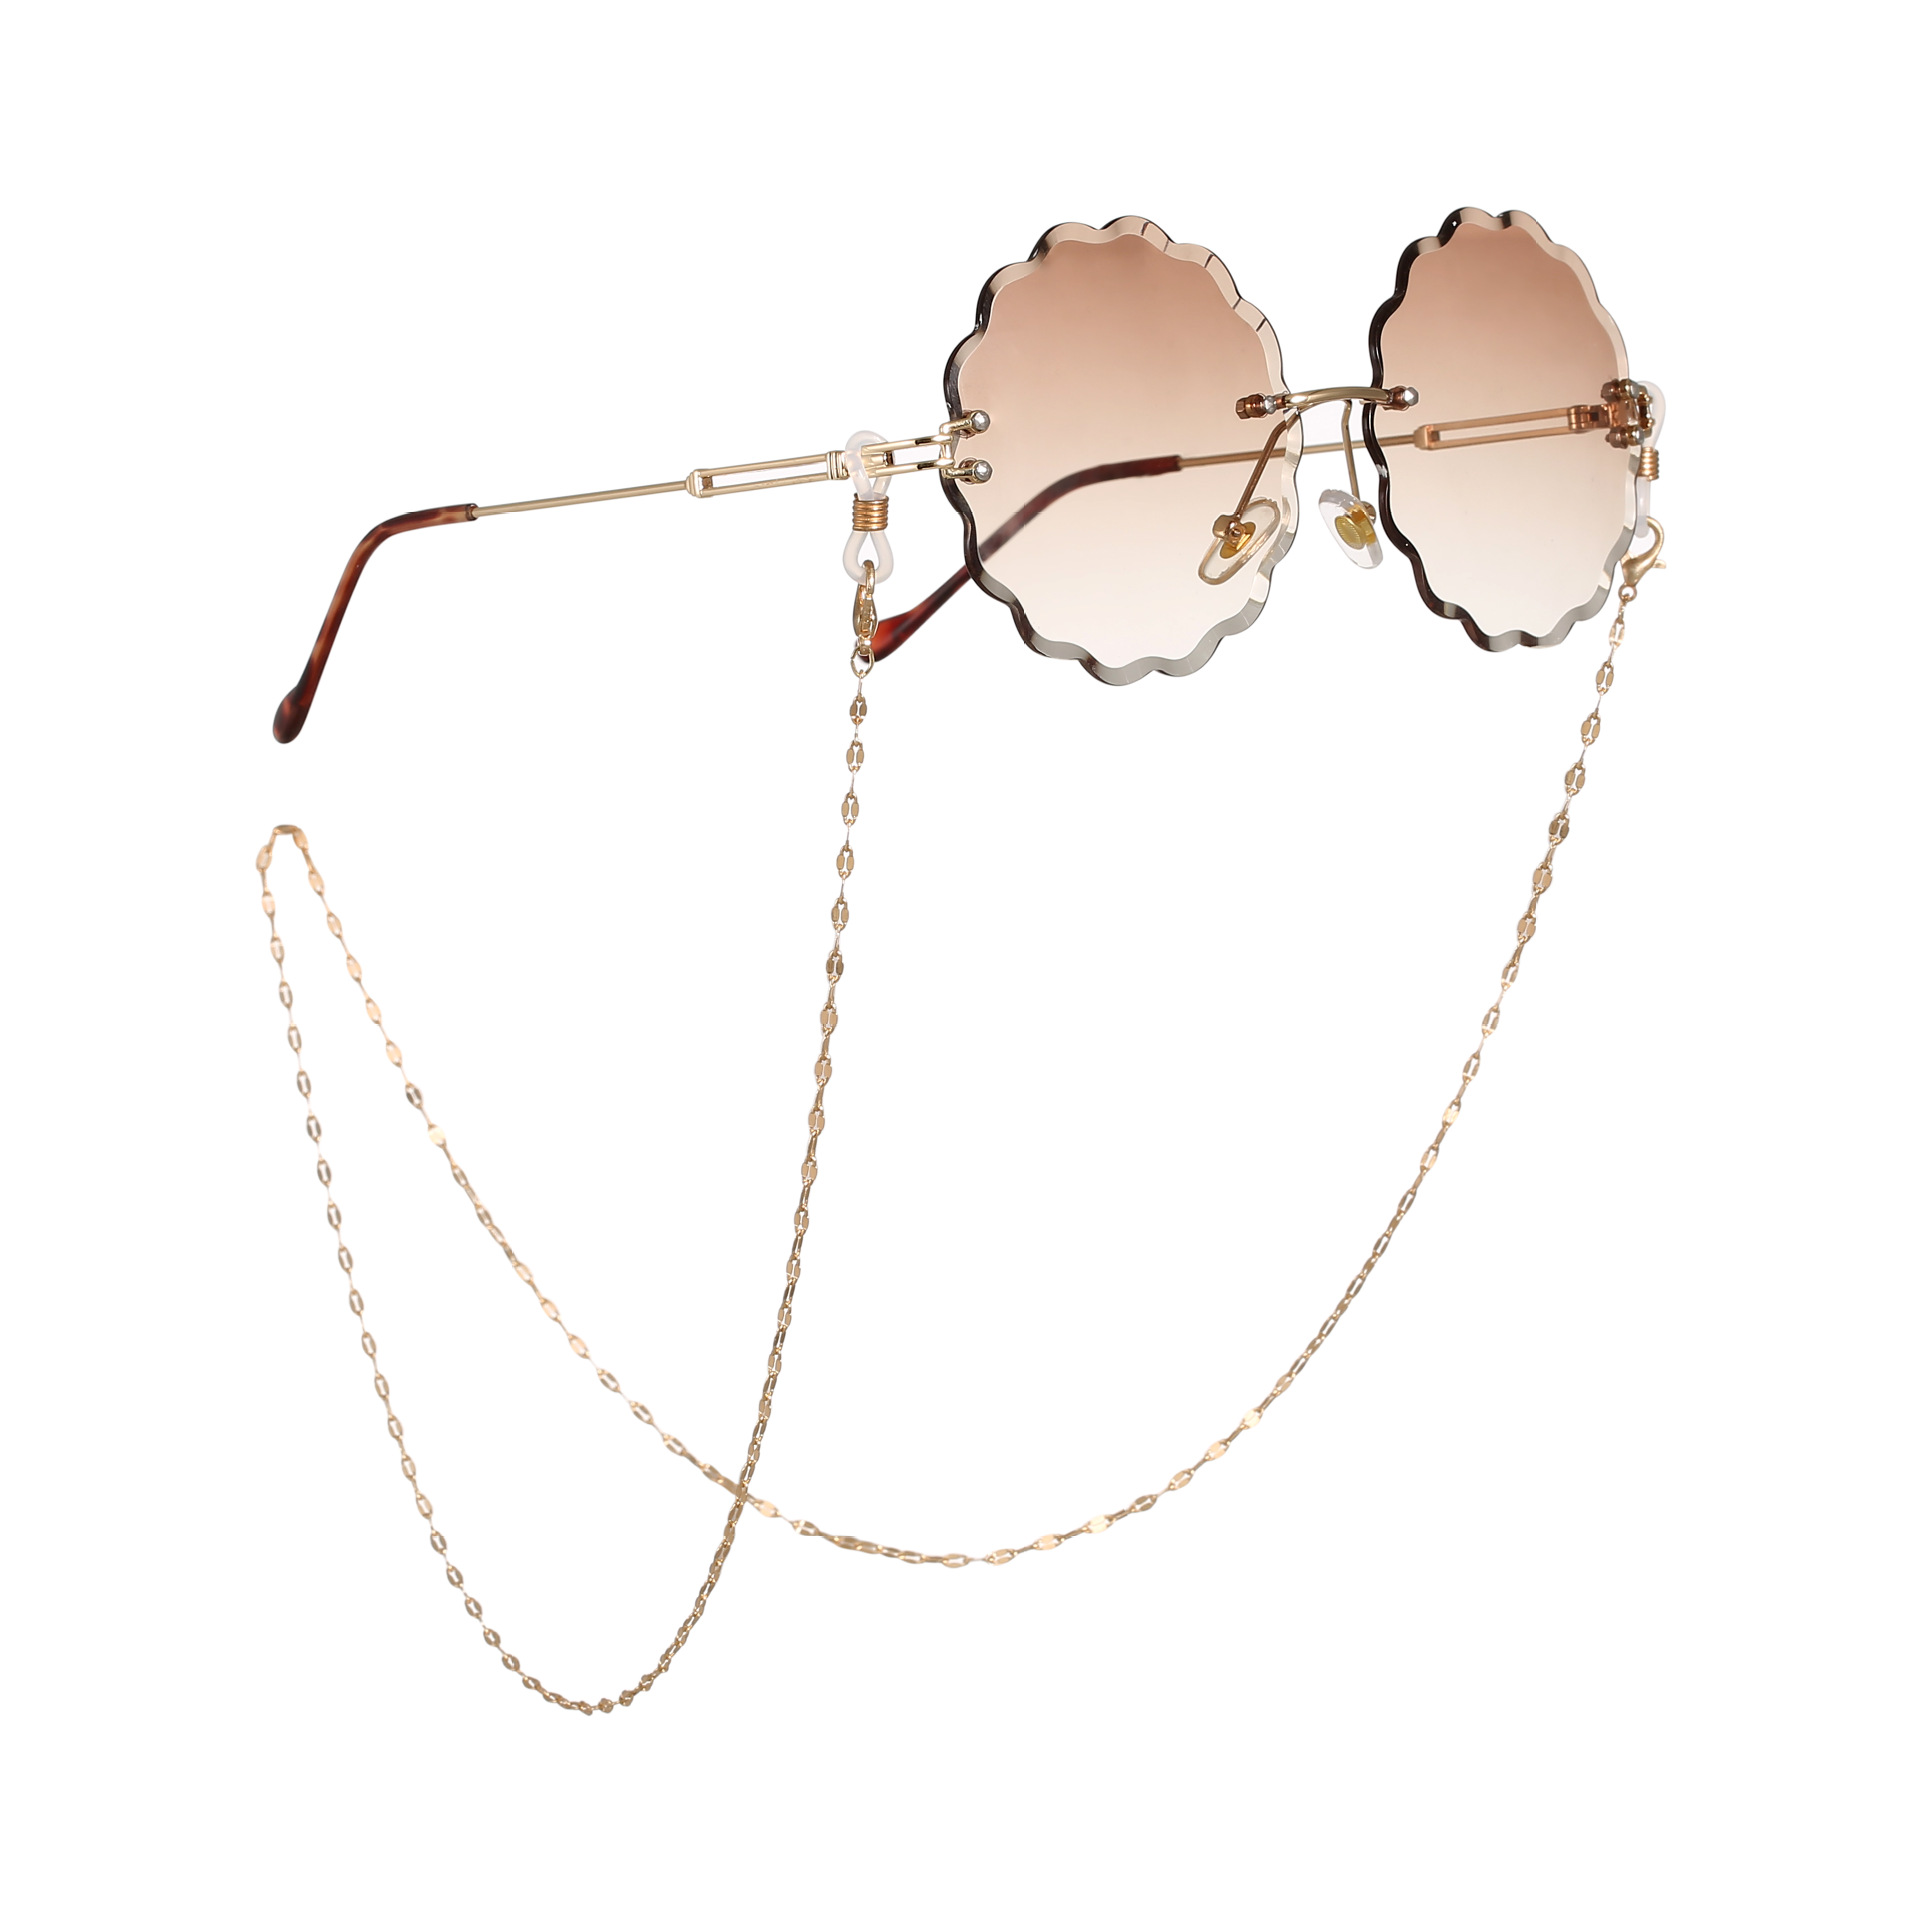 2019 New Fashion Gold Color Copper Glasses Chain For Women Metal Sunglasses Cords Beaded Eyeglass Glasses Accessories